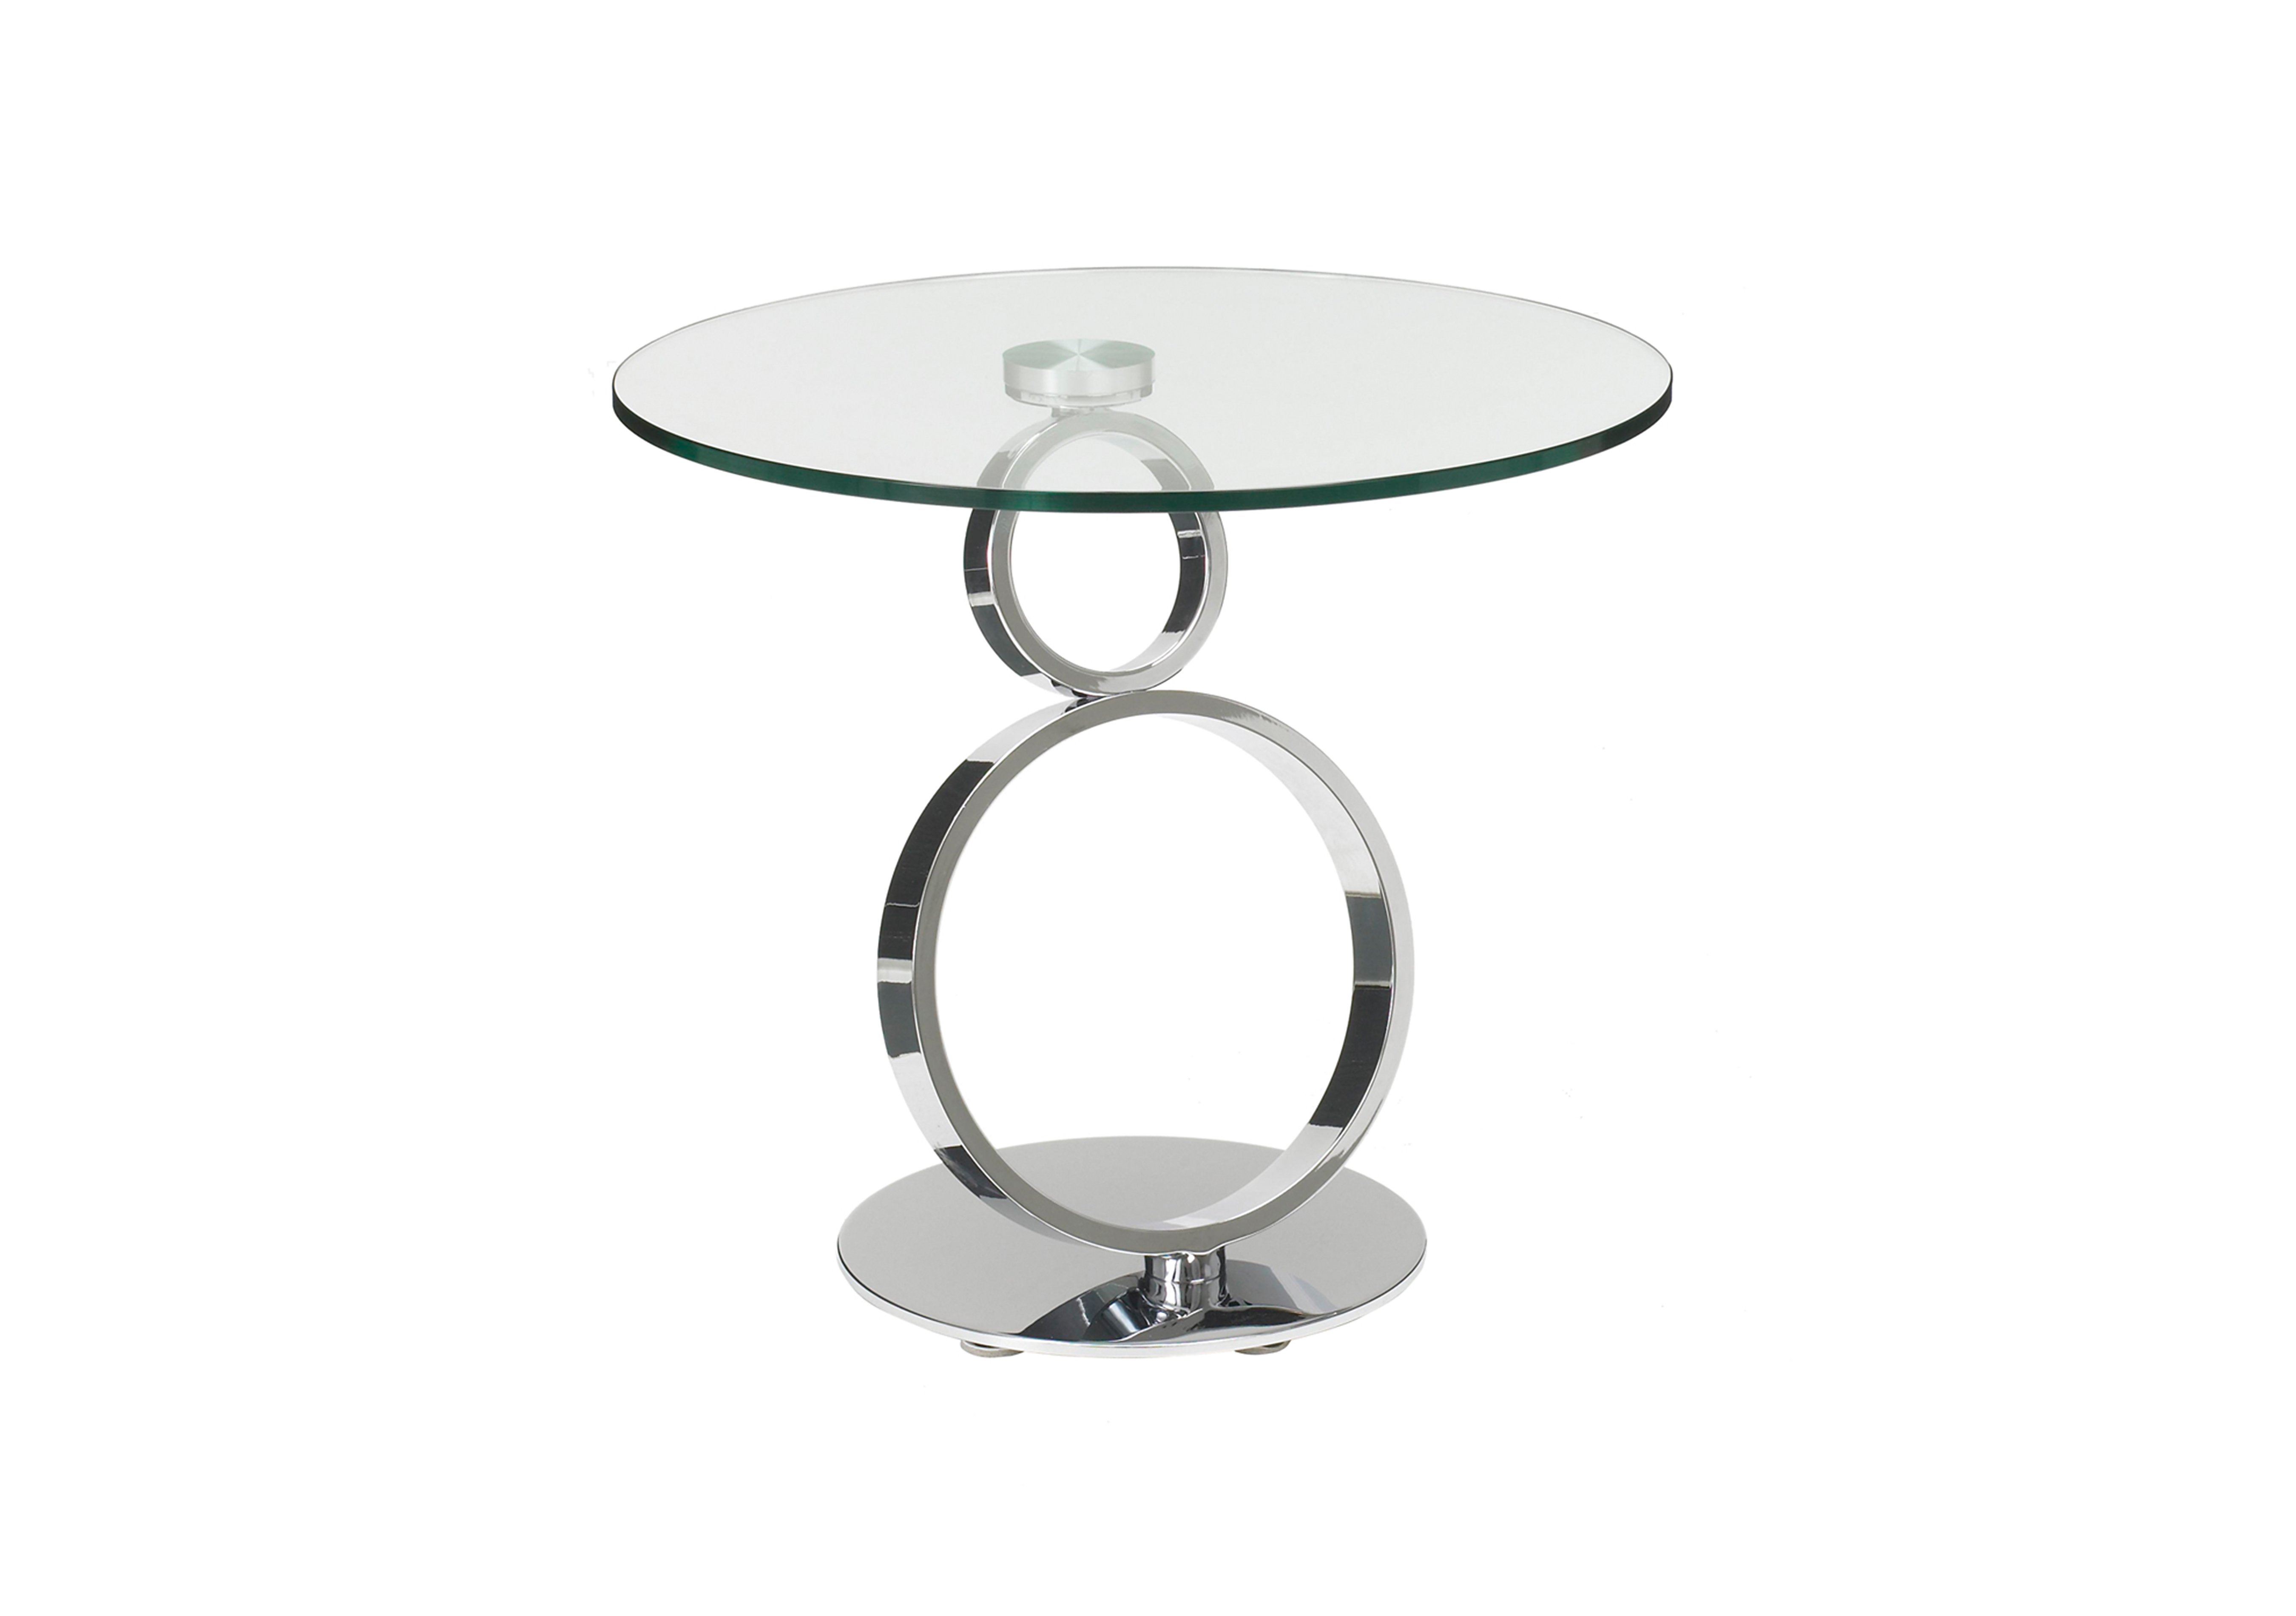 glass side tables, lamp tables & end tables - furniture village